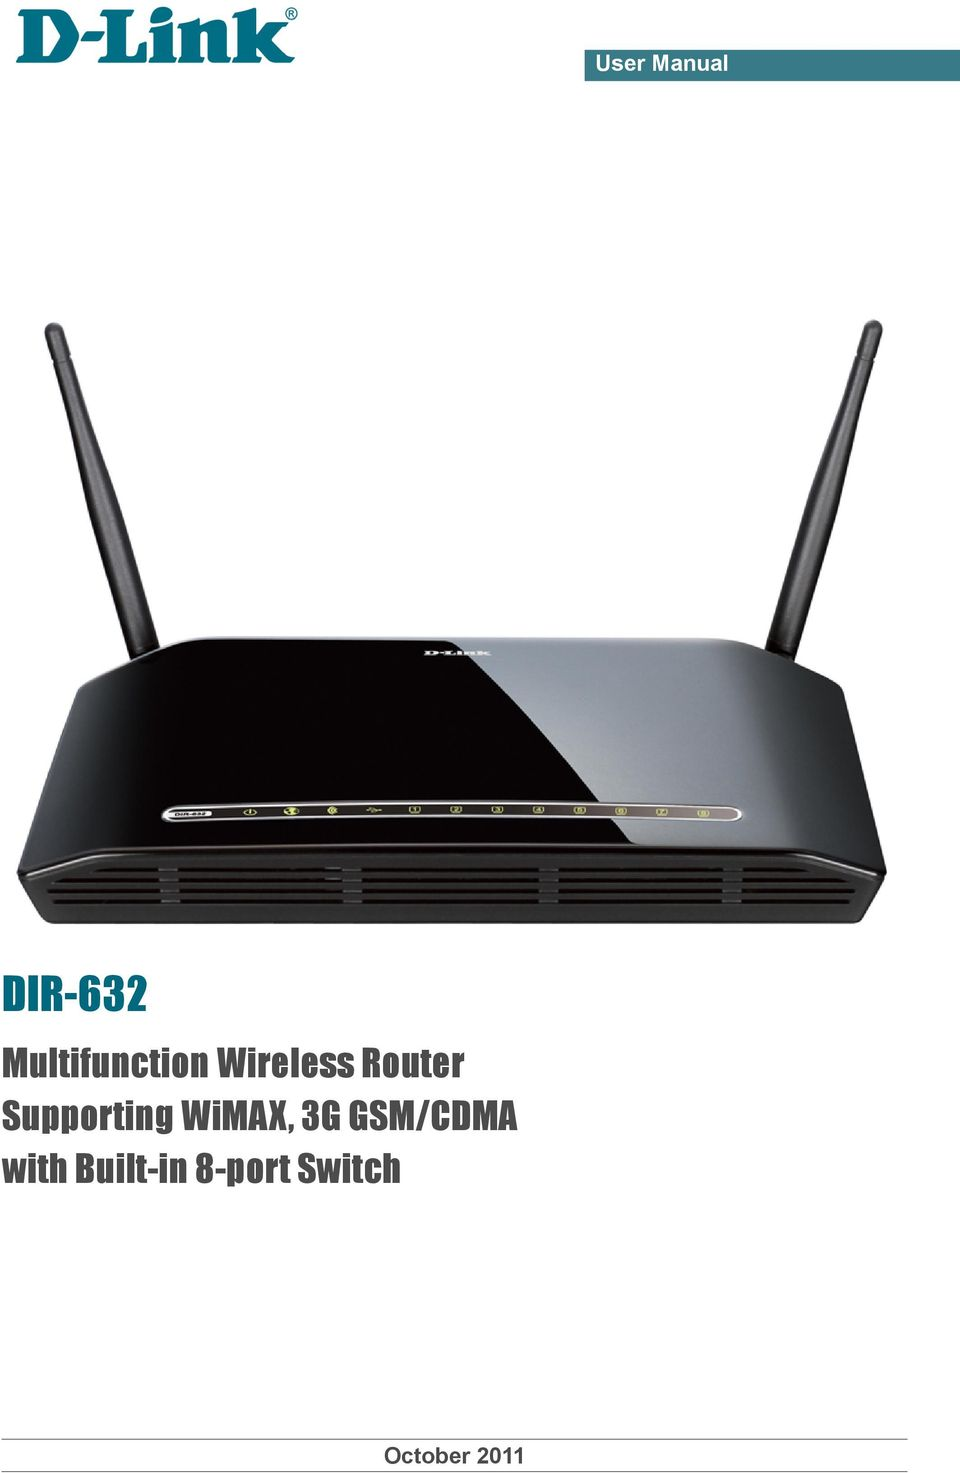 WiMAX, 3G GSM/CDMA with